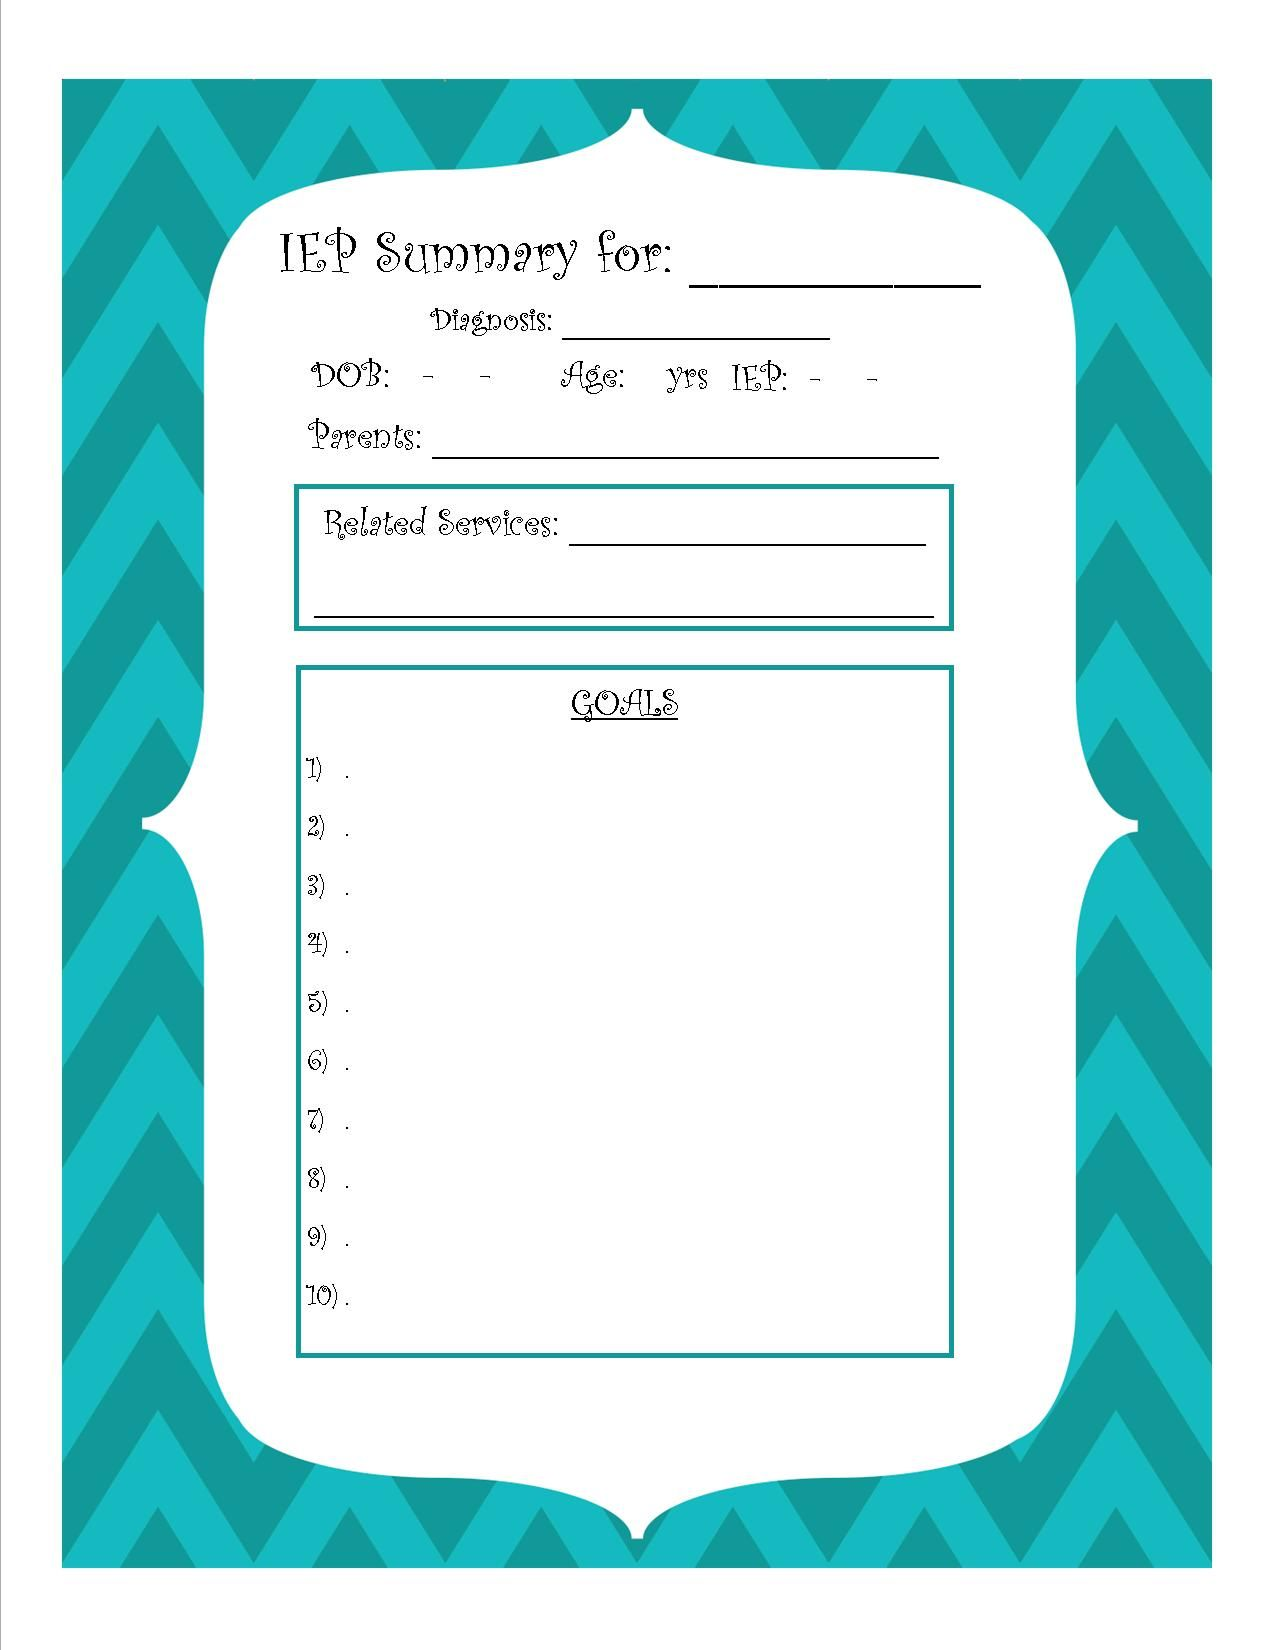 Easy And Simple Free Printable Iep Summary Sheet For Ecse